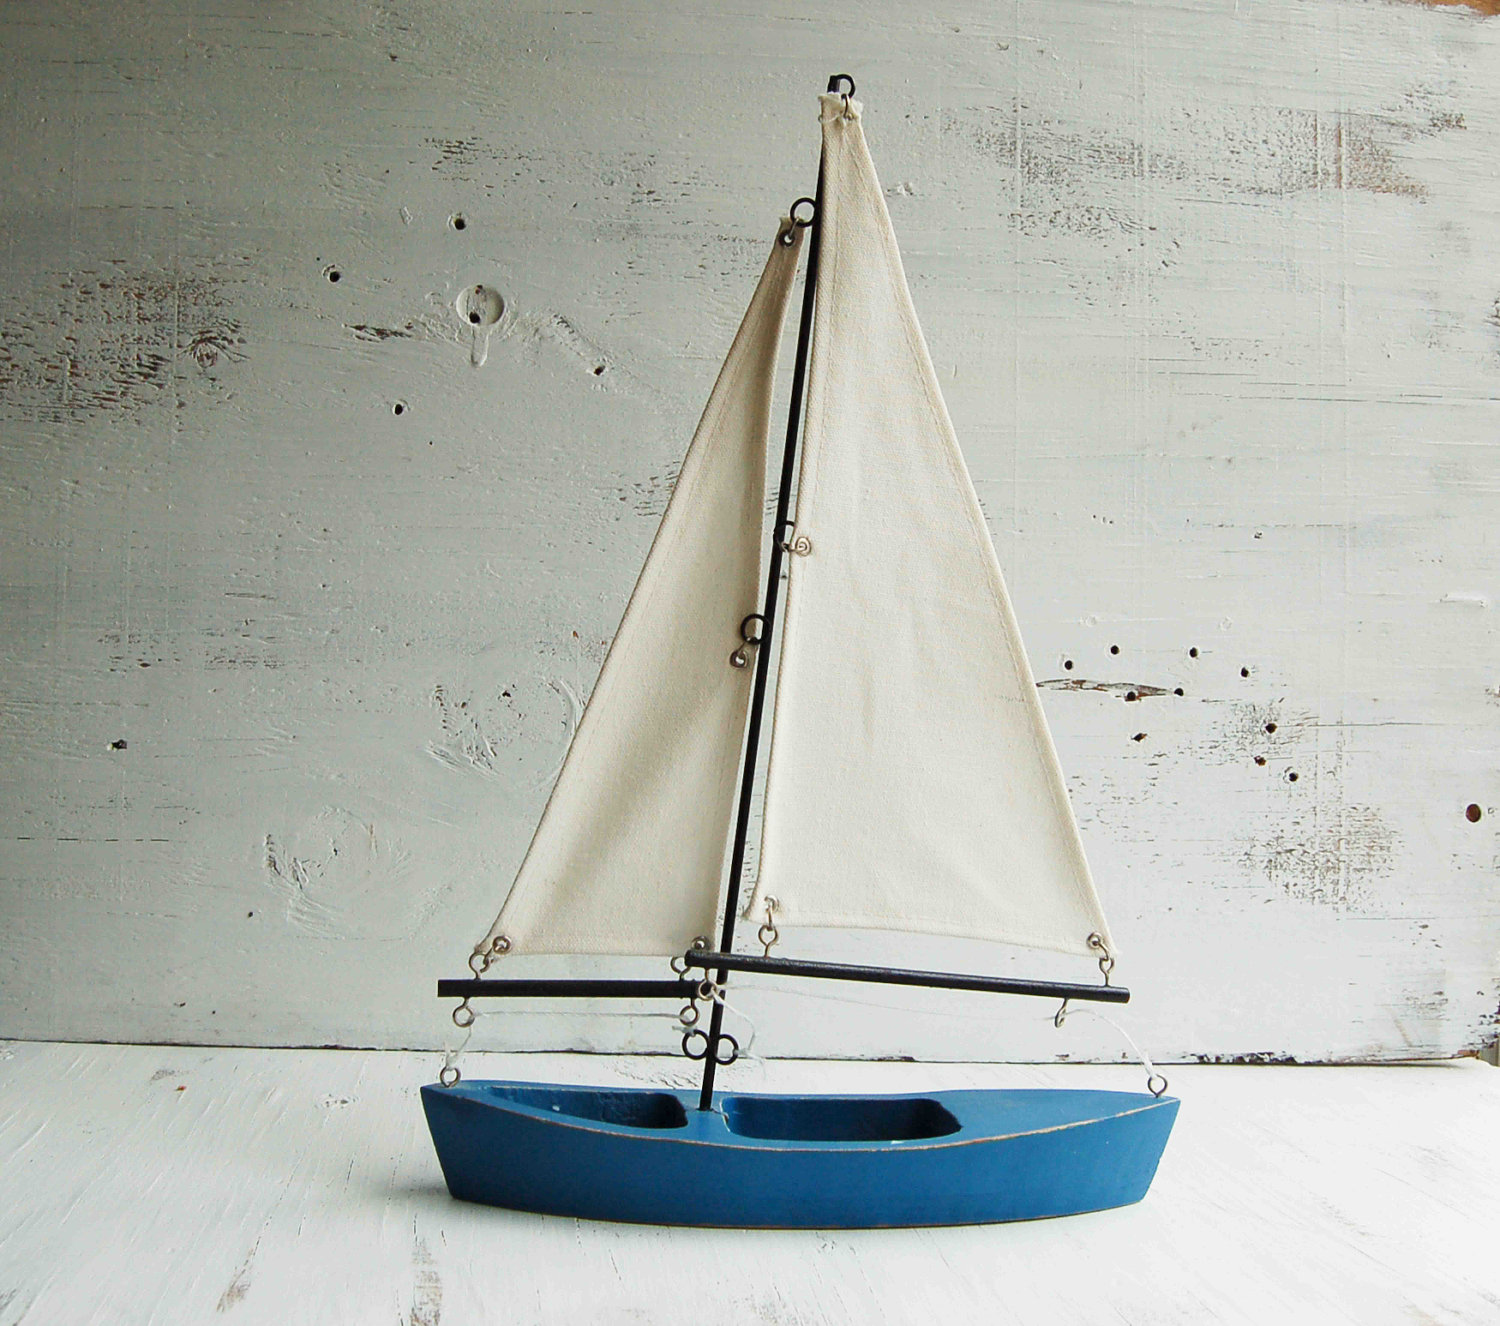 Sailing Biography | Boating, Toy and Wooden toys